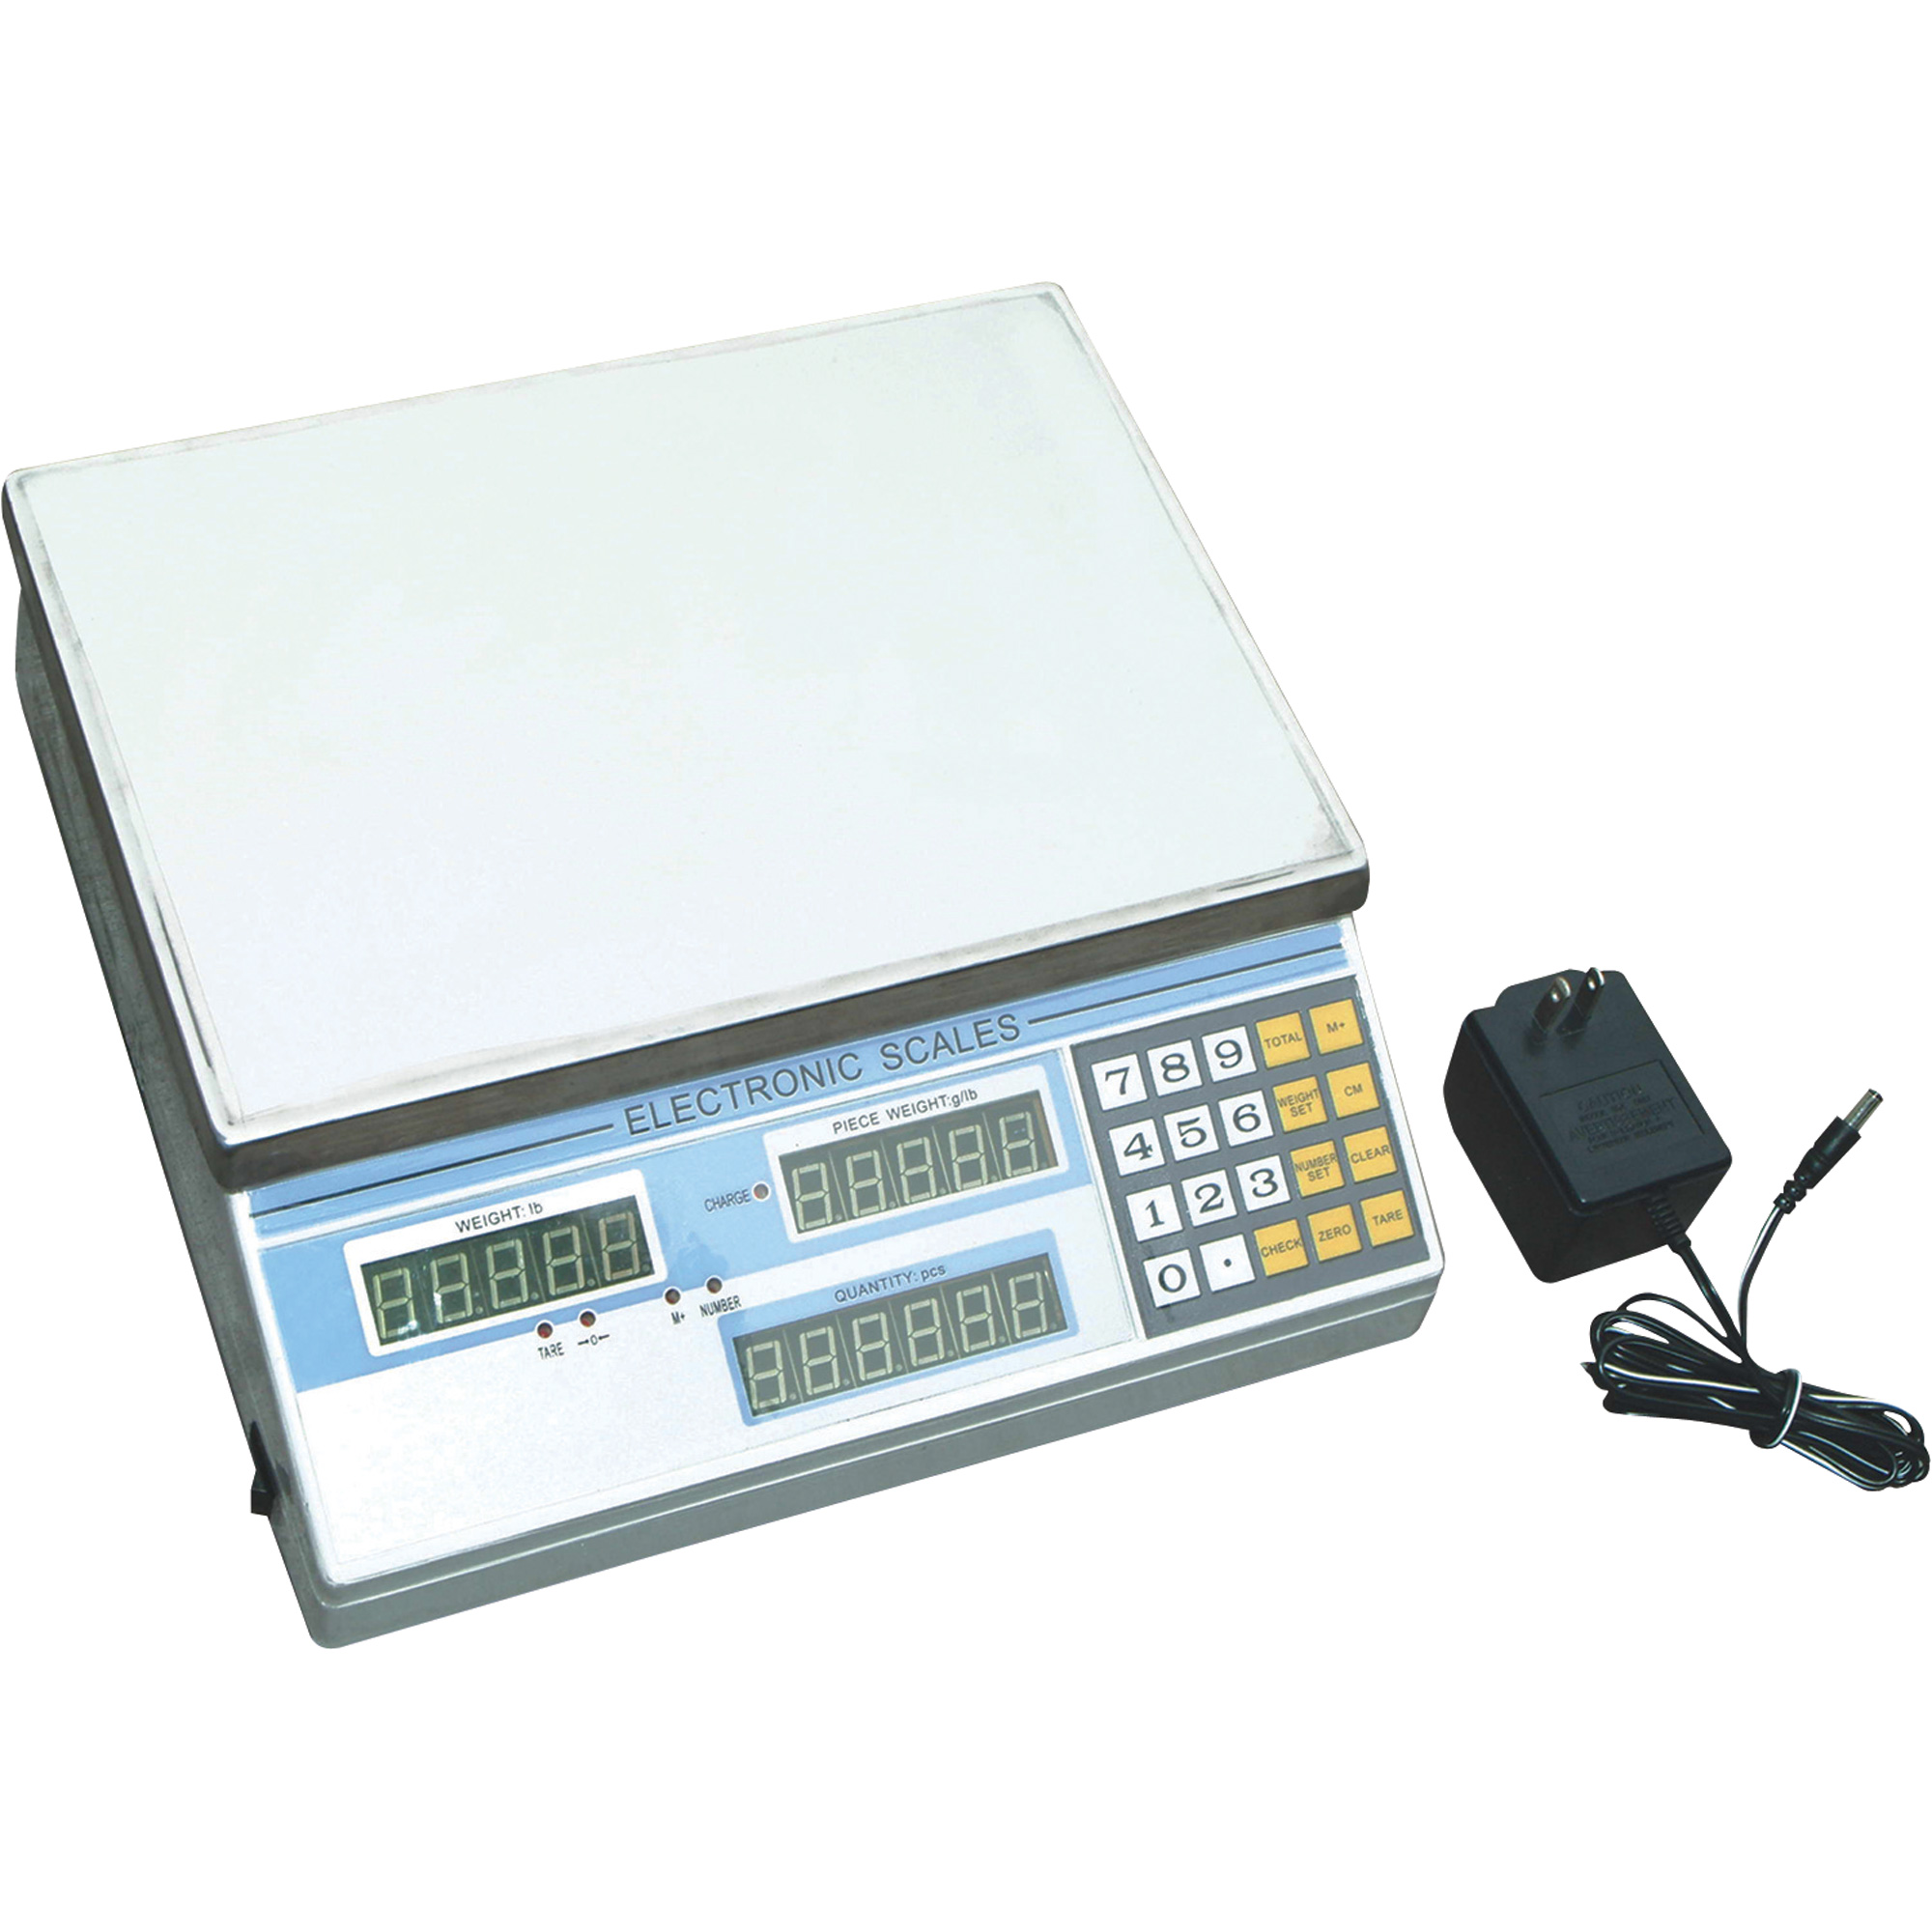 Industrial and Electronic Scales - The Norms of Modern Business